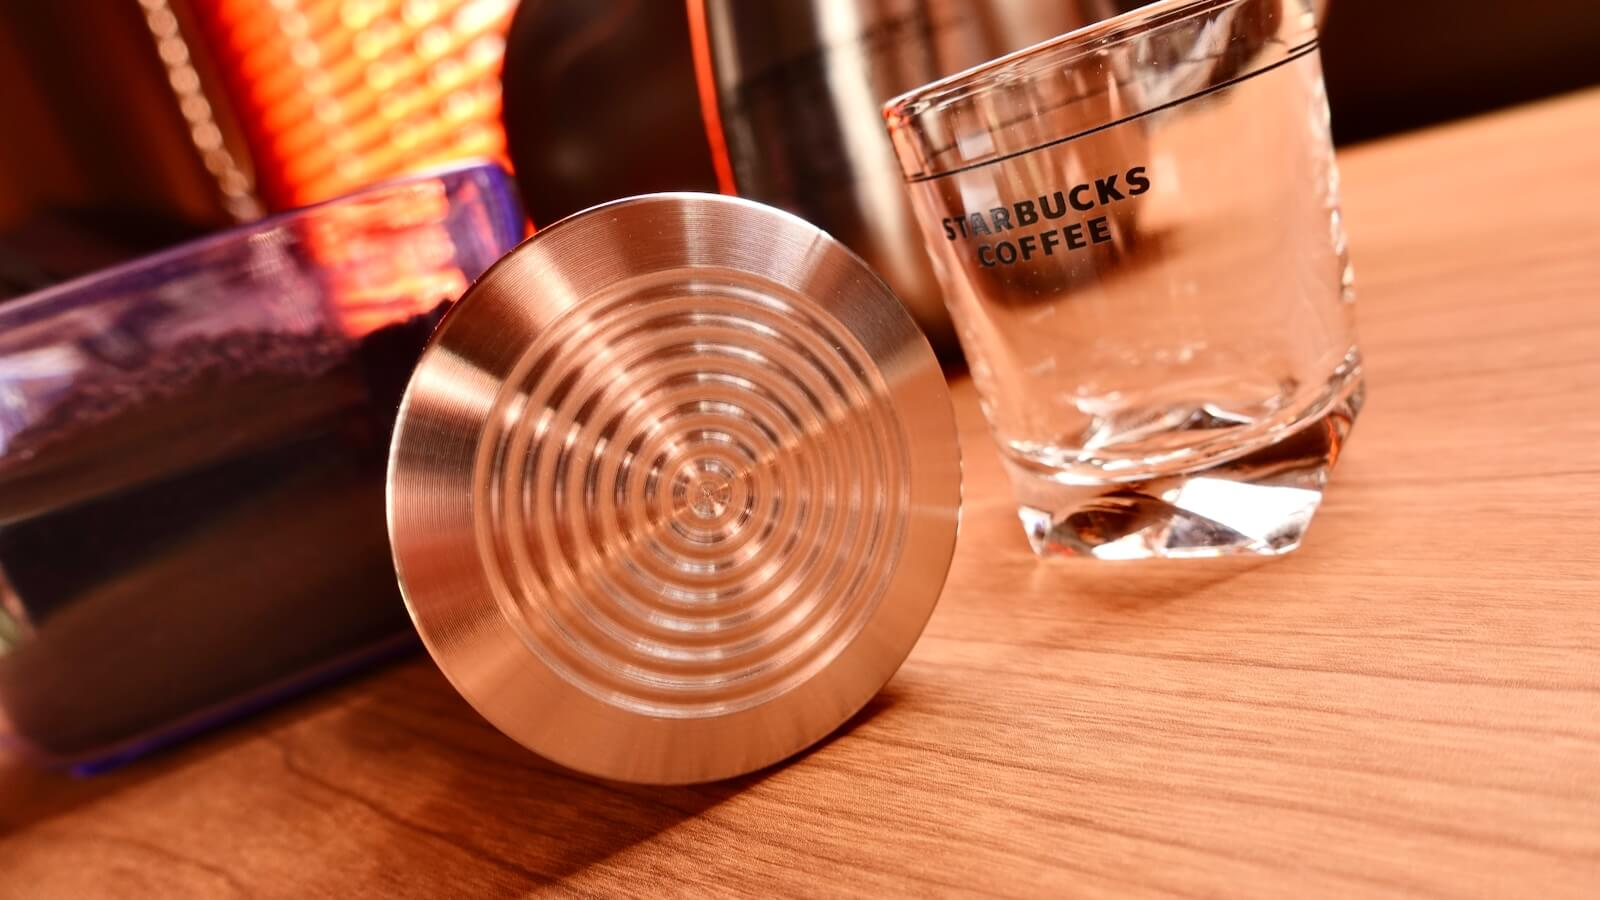 Reg Barber Tamper Base C Ripple from below